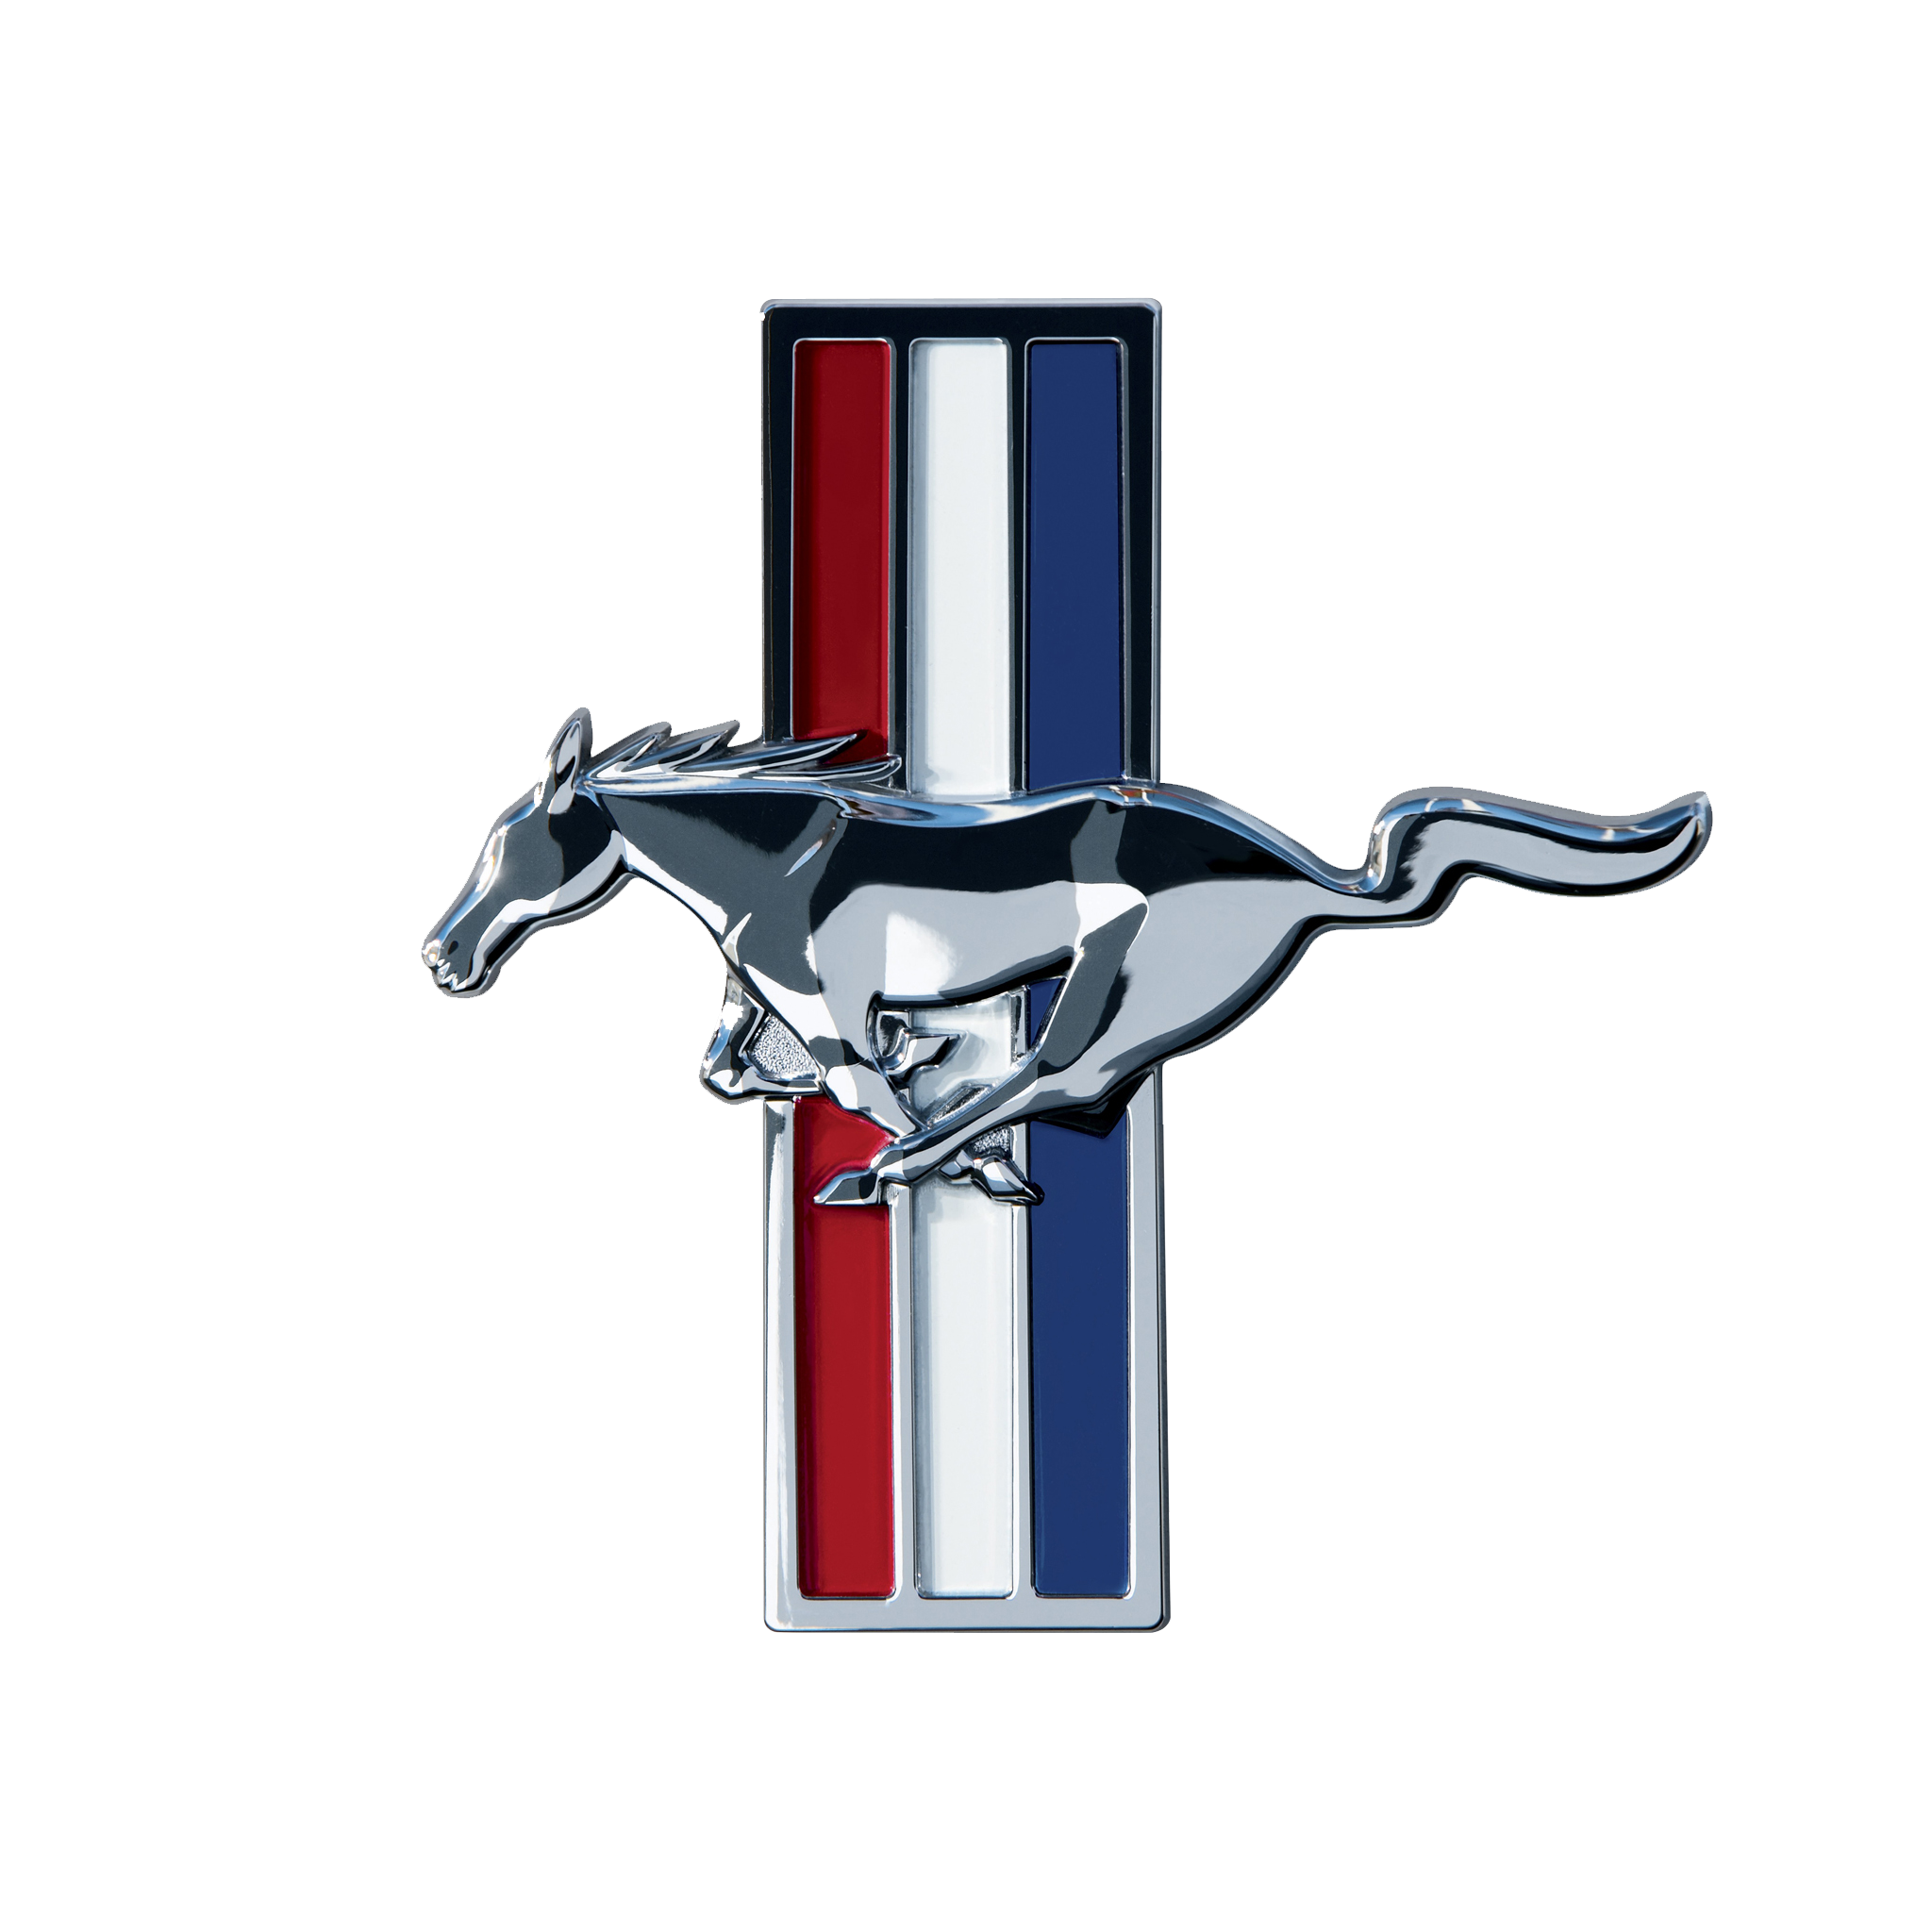 2048x2048 Mustang Logo, Meaning, Information